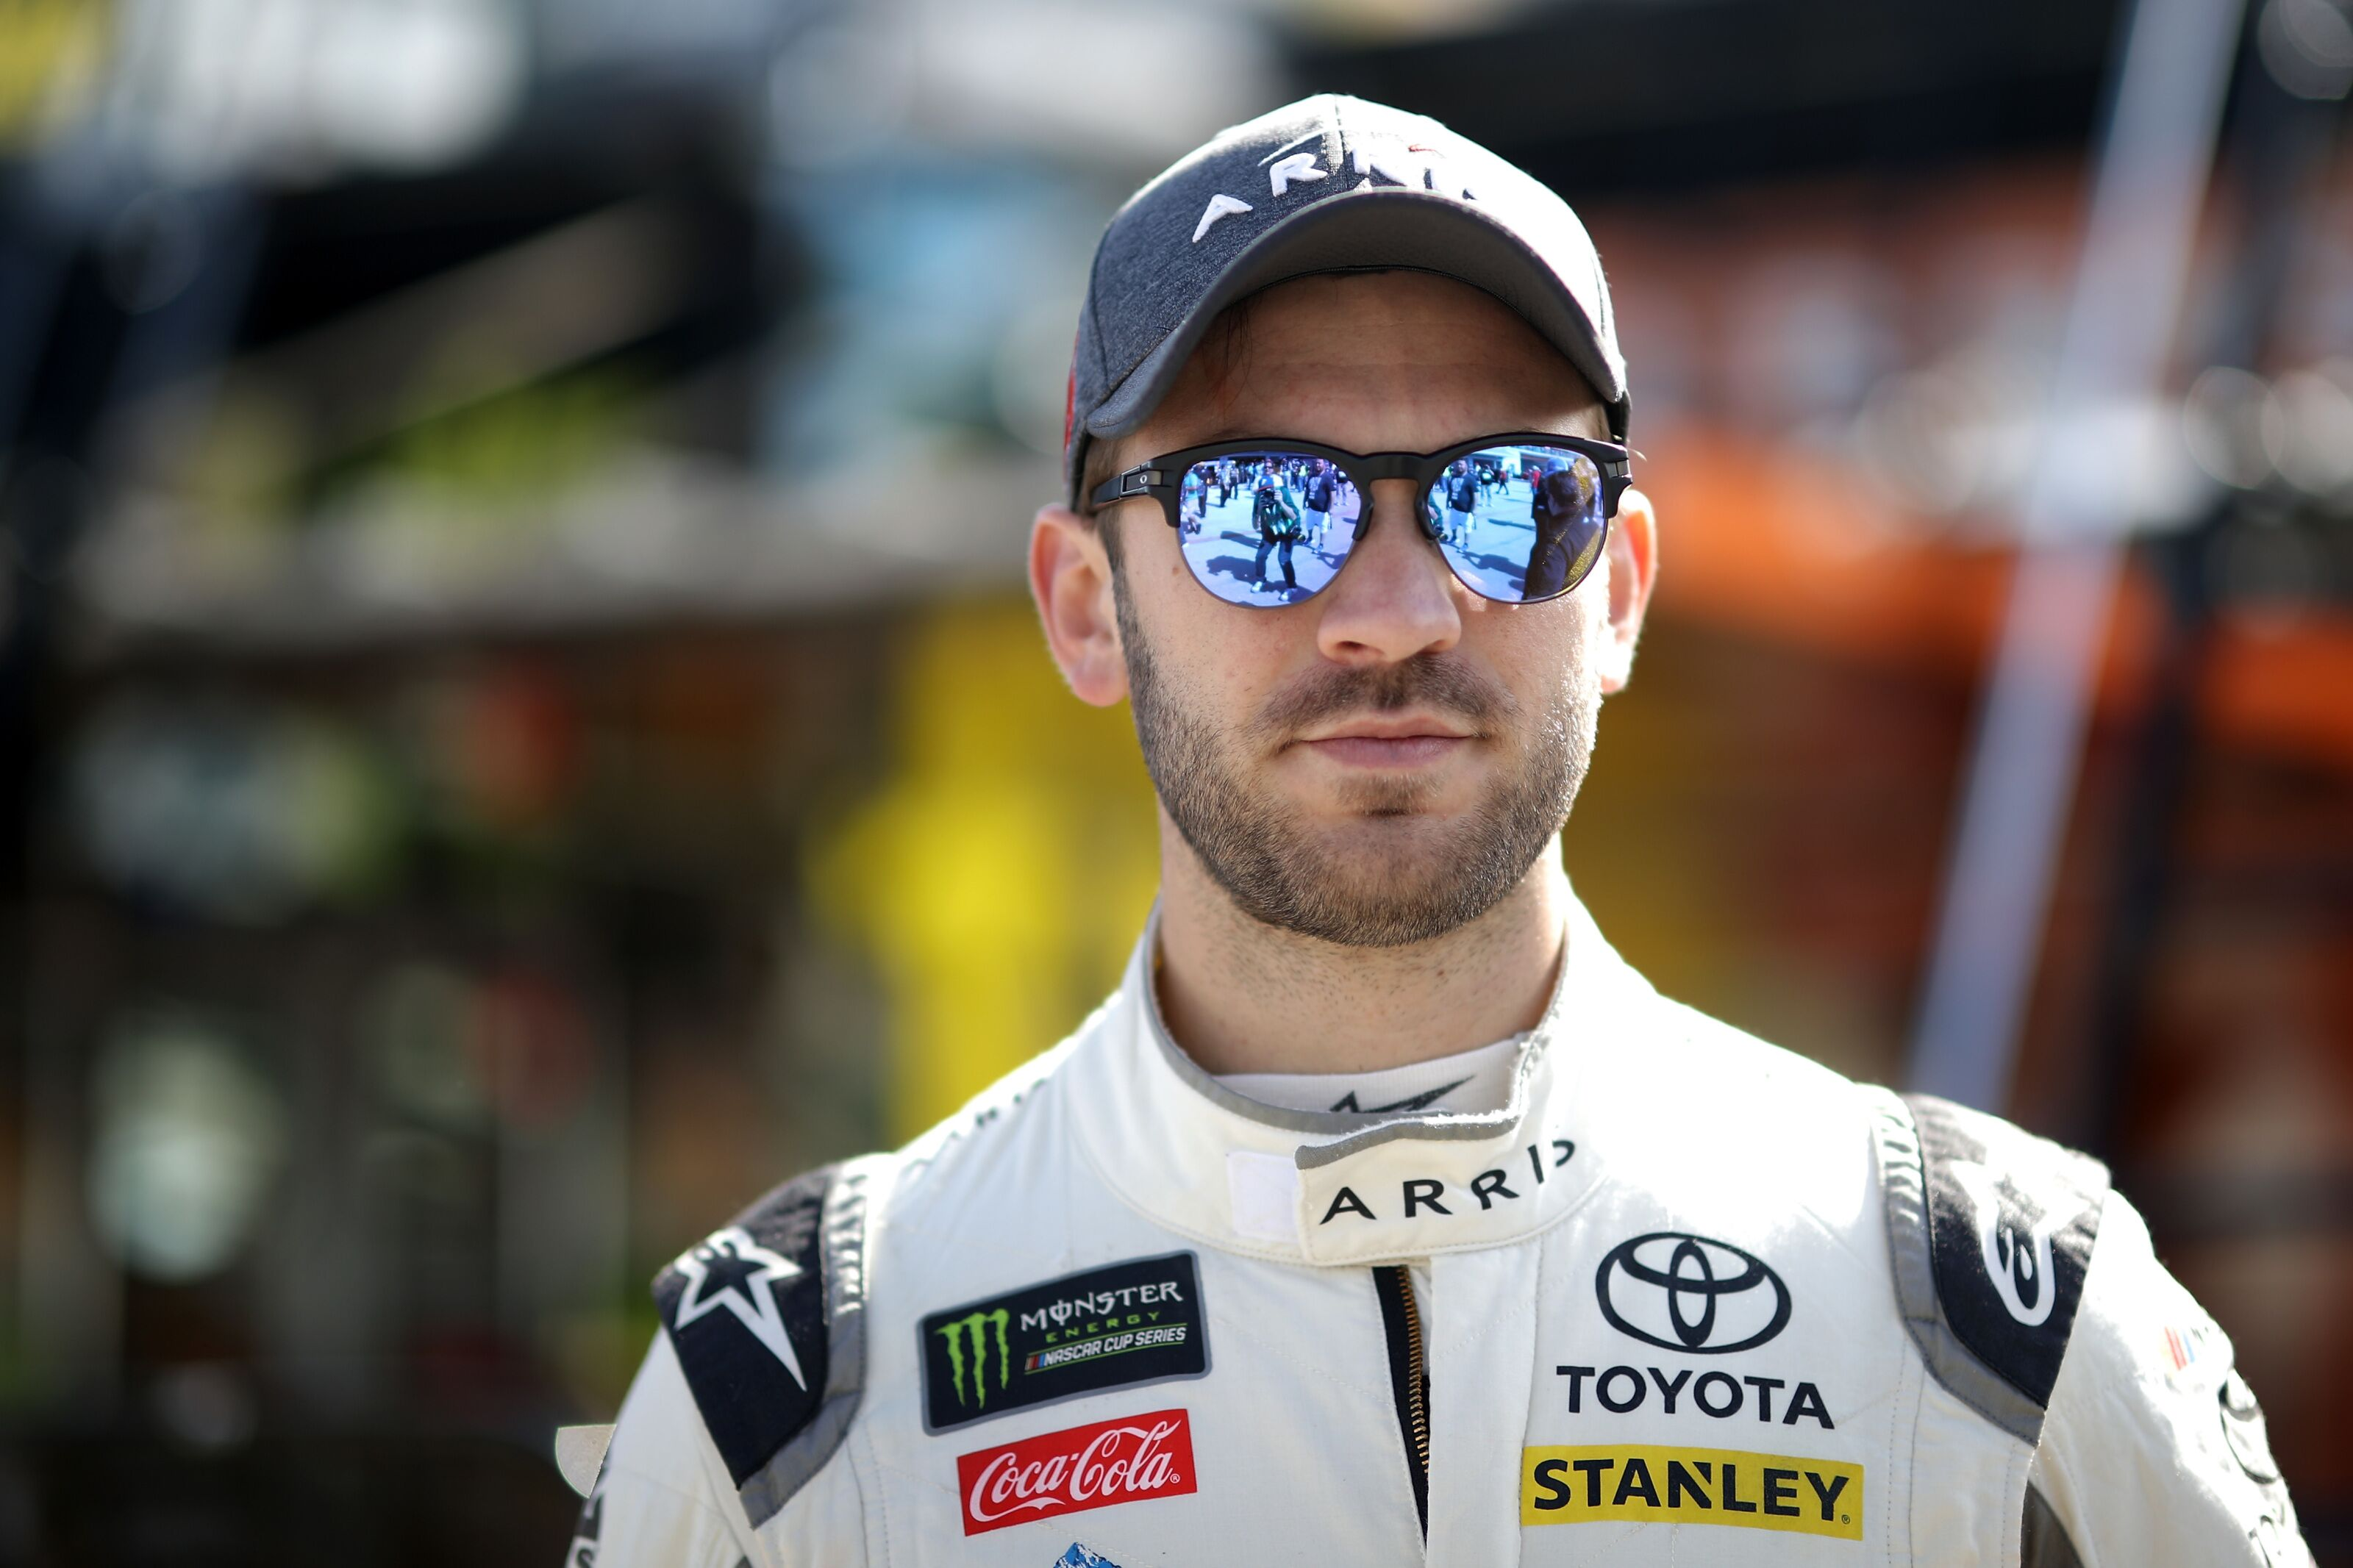 NASCAR Cup Series: Will Daniel Suarez earn his first victory in 2019?